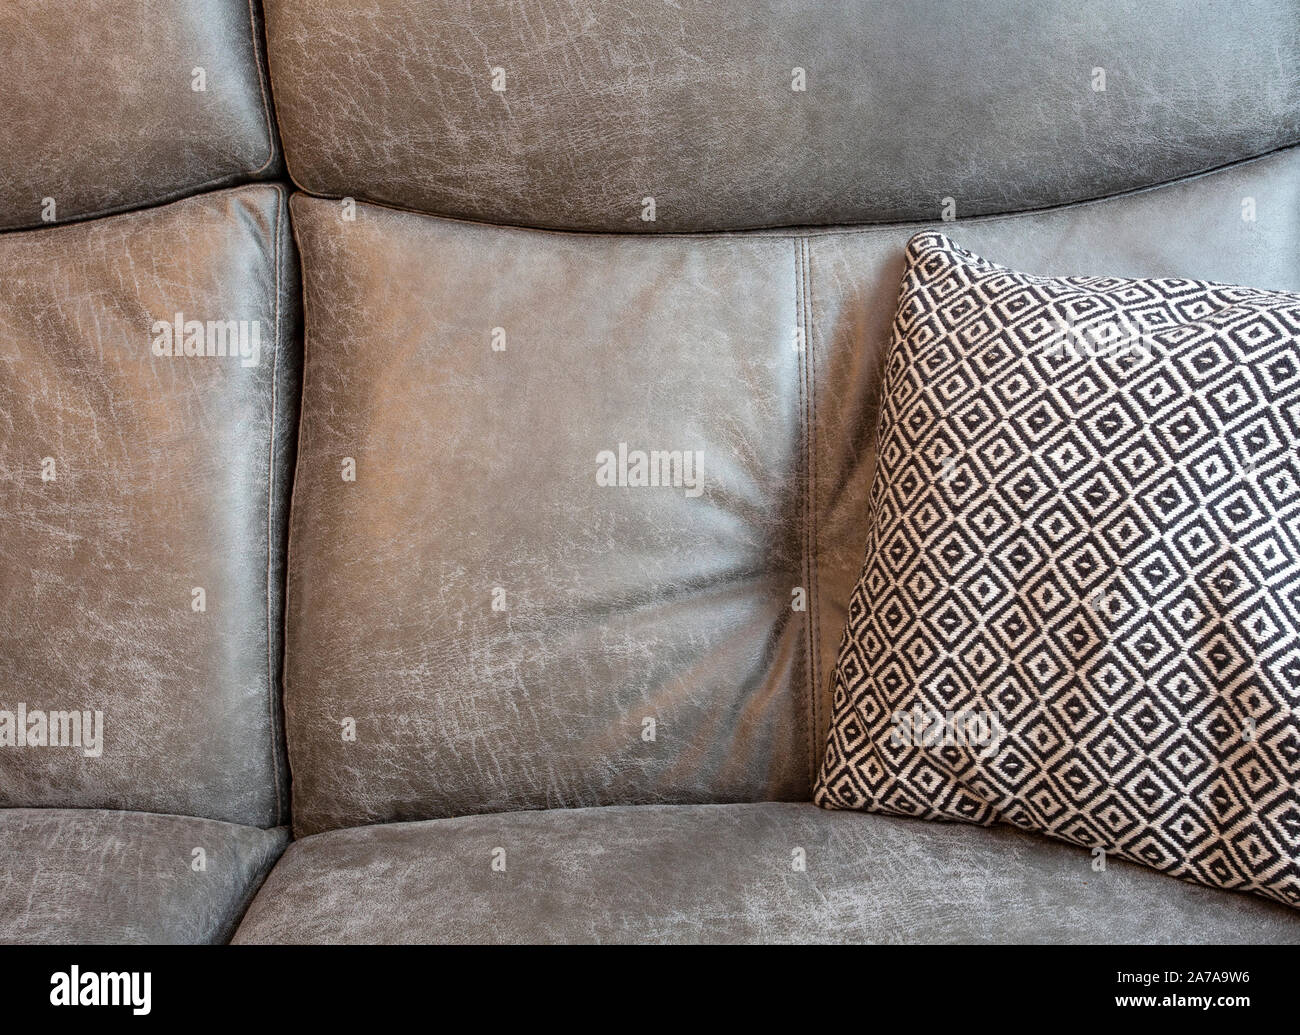 Abstract Of Grey Leather Sofa And Black And White Pillows In